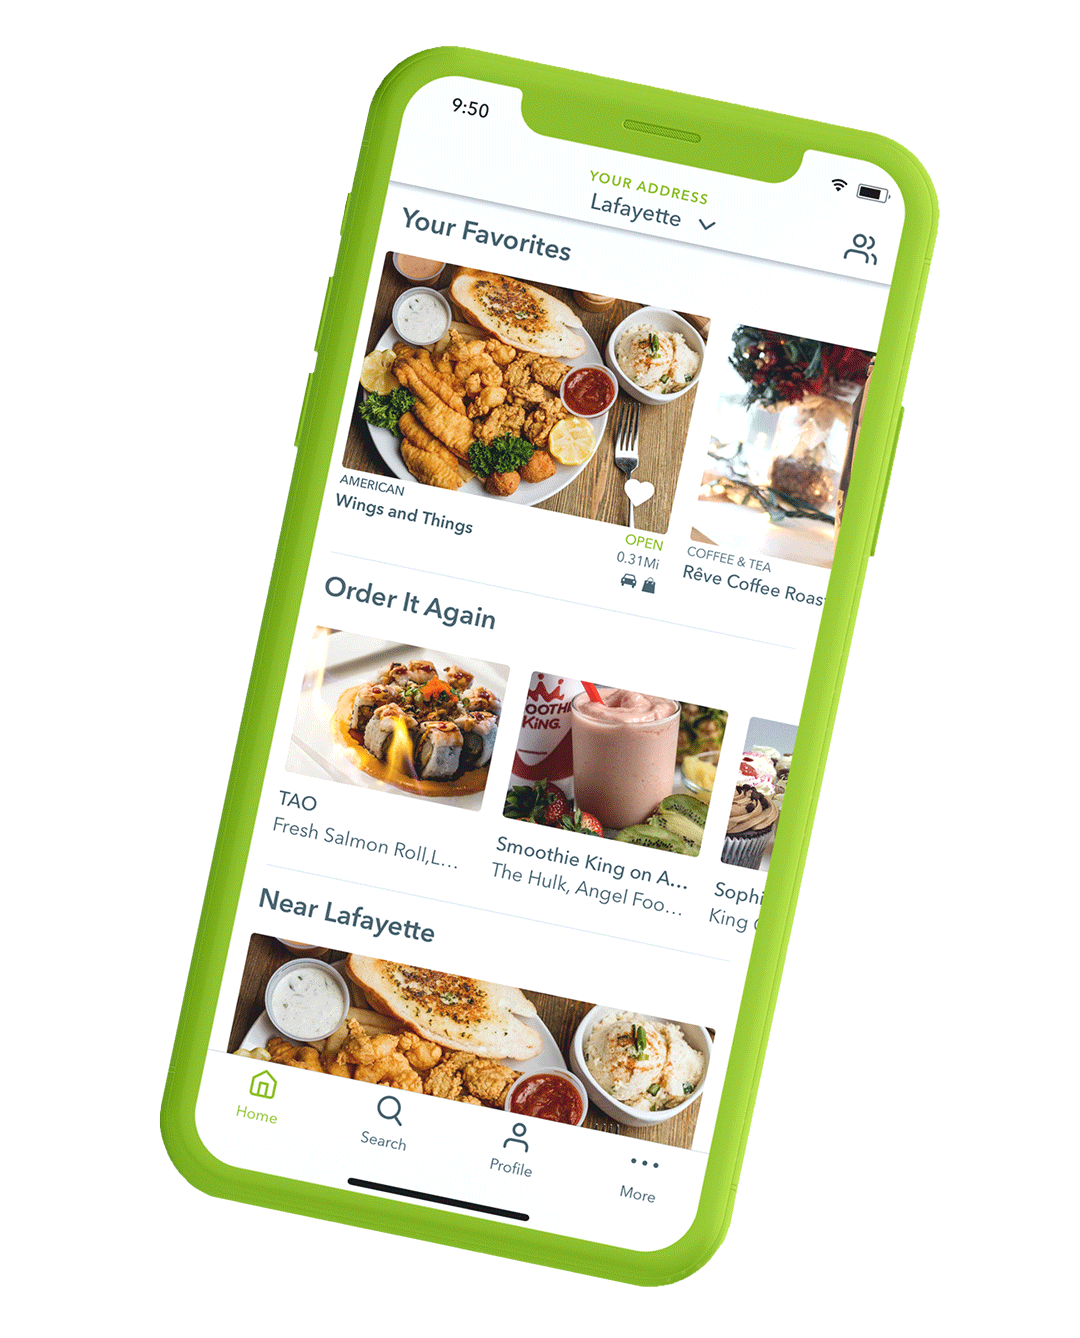 The new Waitr home screen. It's got your favorites, order it again, and restaurants near you right there in plain view. There's even a convenient bottom menu bar!